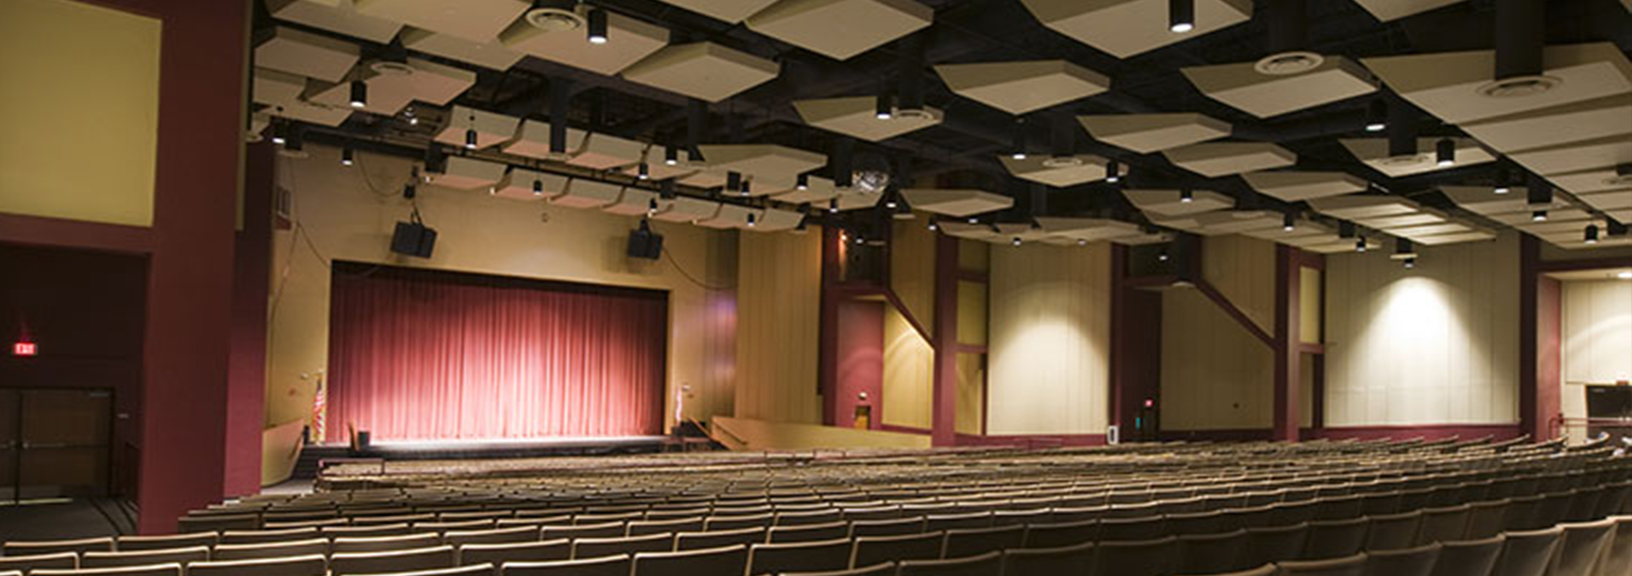 Church Soundproofing Acoustical Curtains